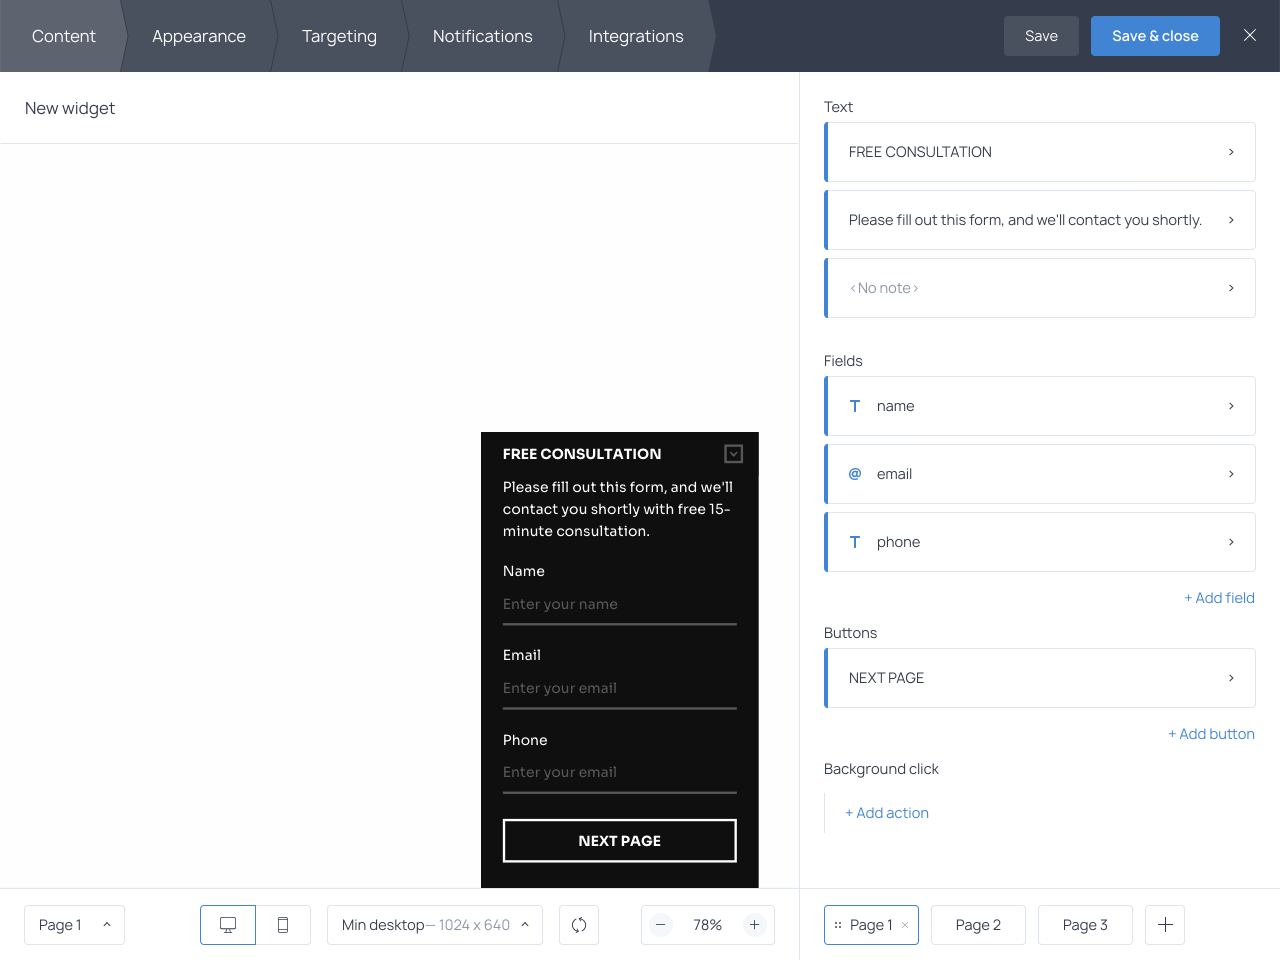 Getsitecontrol allows for creating a prospective client form within minutes